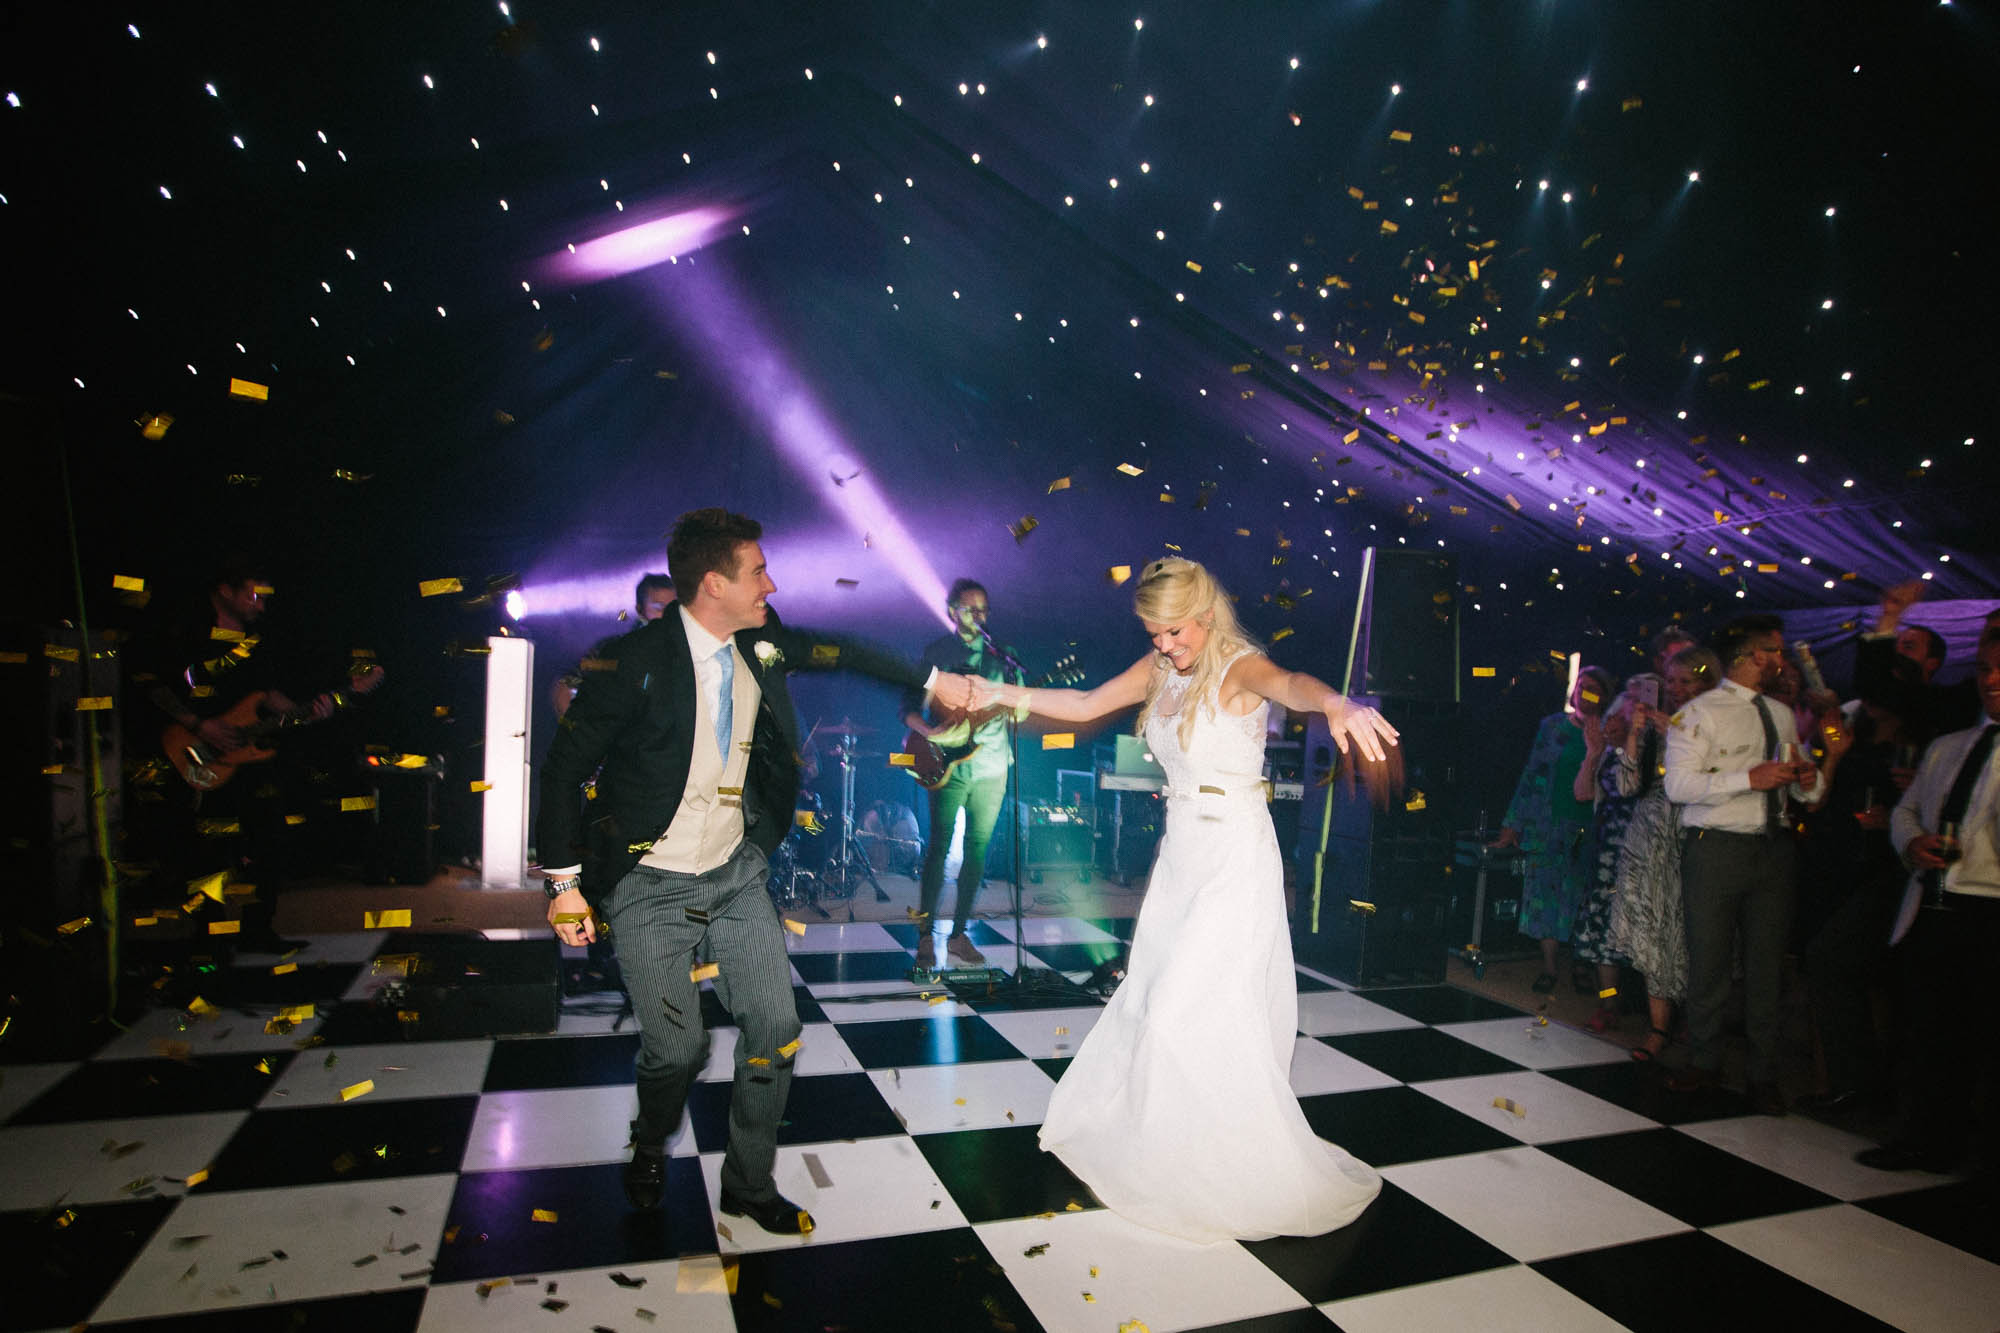 Bride and groom performing first dance with gold confetti showering down on them